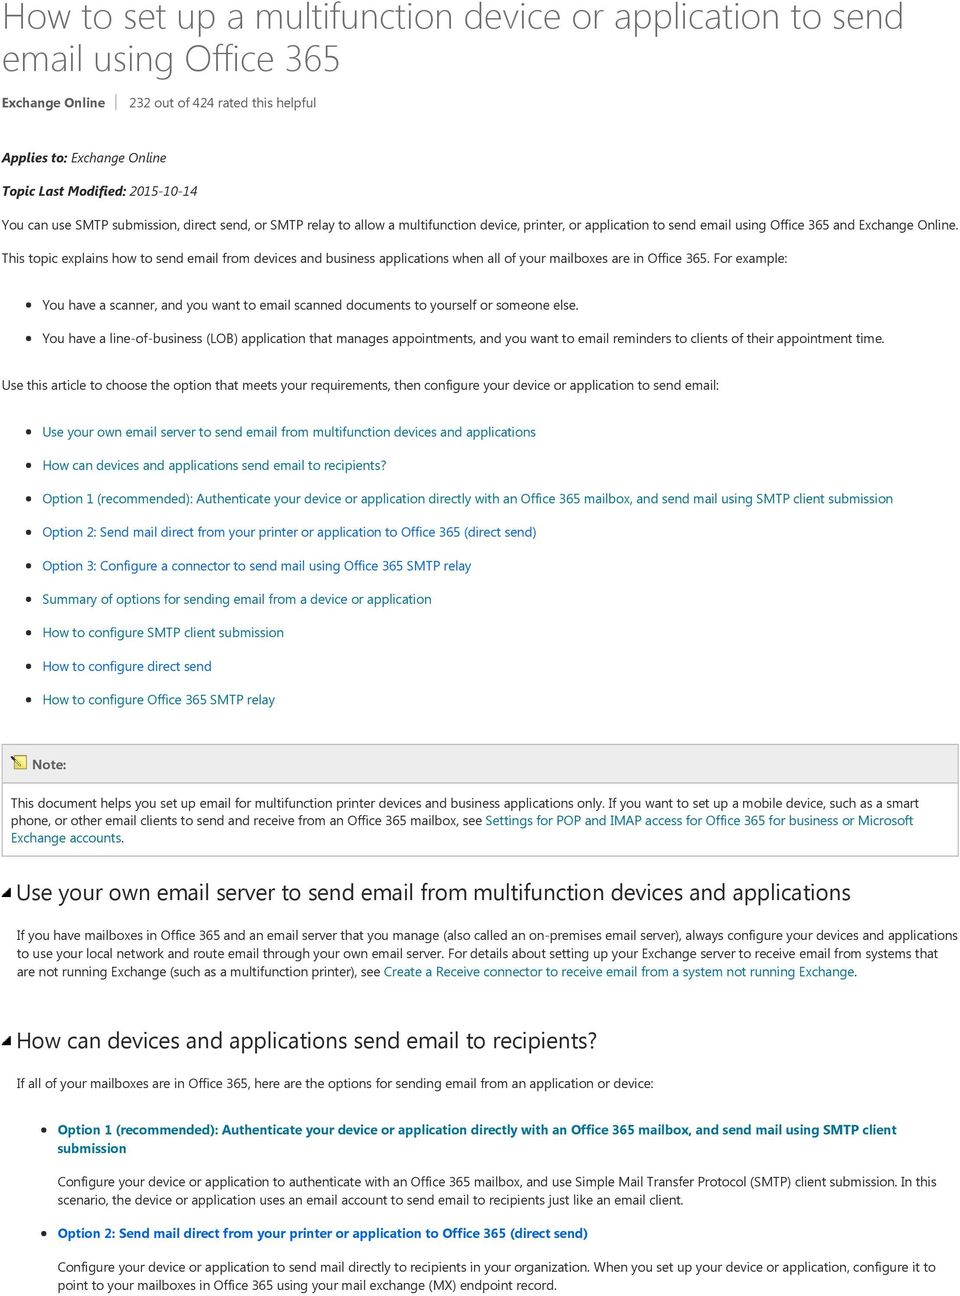 How to set up a multifunction device or application to send